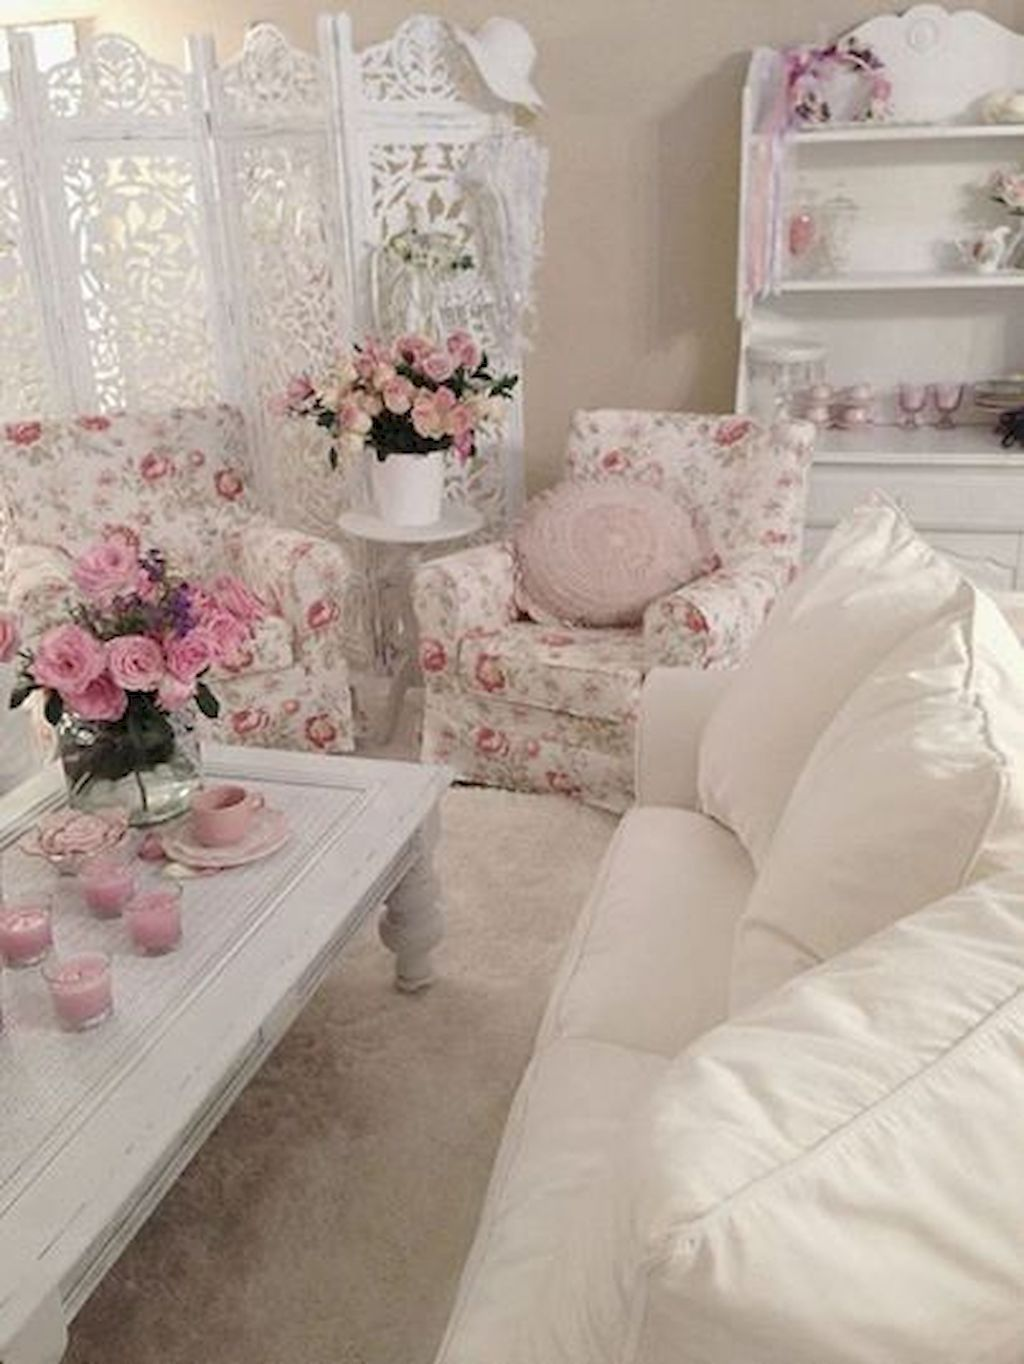 Journey to the countryside with these gorgeous farmhouse living rooms. 230 Shabby Living Rooms Ideas In 2021 Shabby Chic Homes Shabby Chic Decor Shabby Chic Cottage